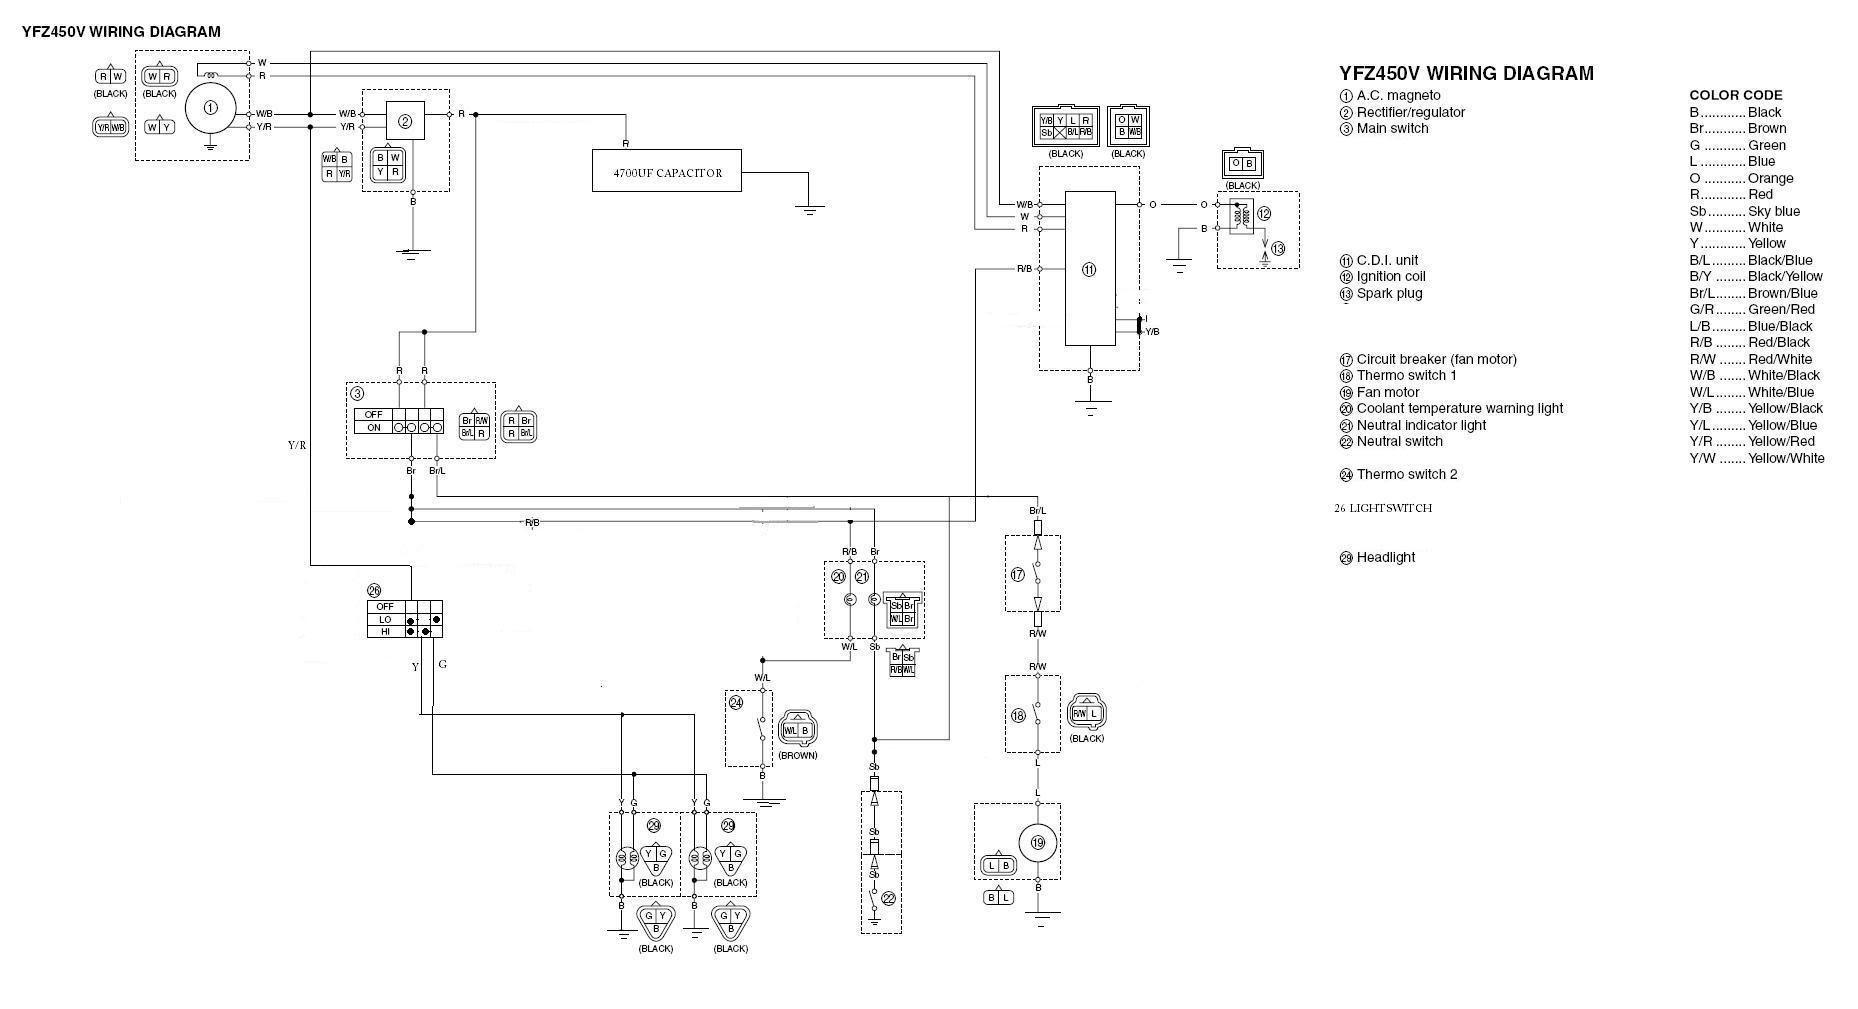 2004 yfz 450 wiring diagram Collection-Yamaha Yfz 450 Wiring 13-s